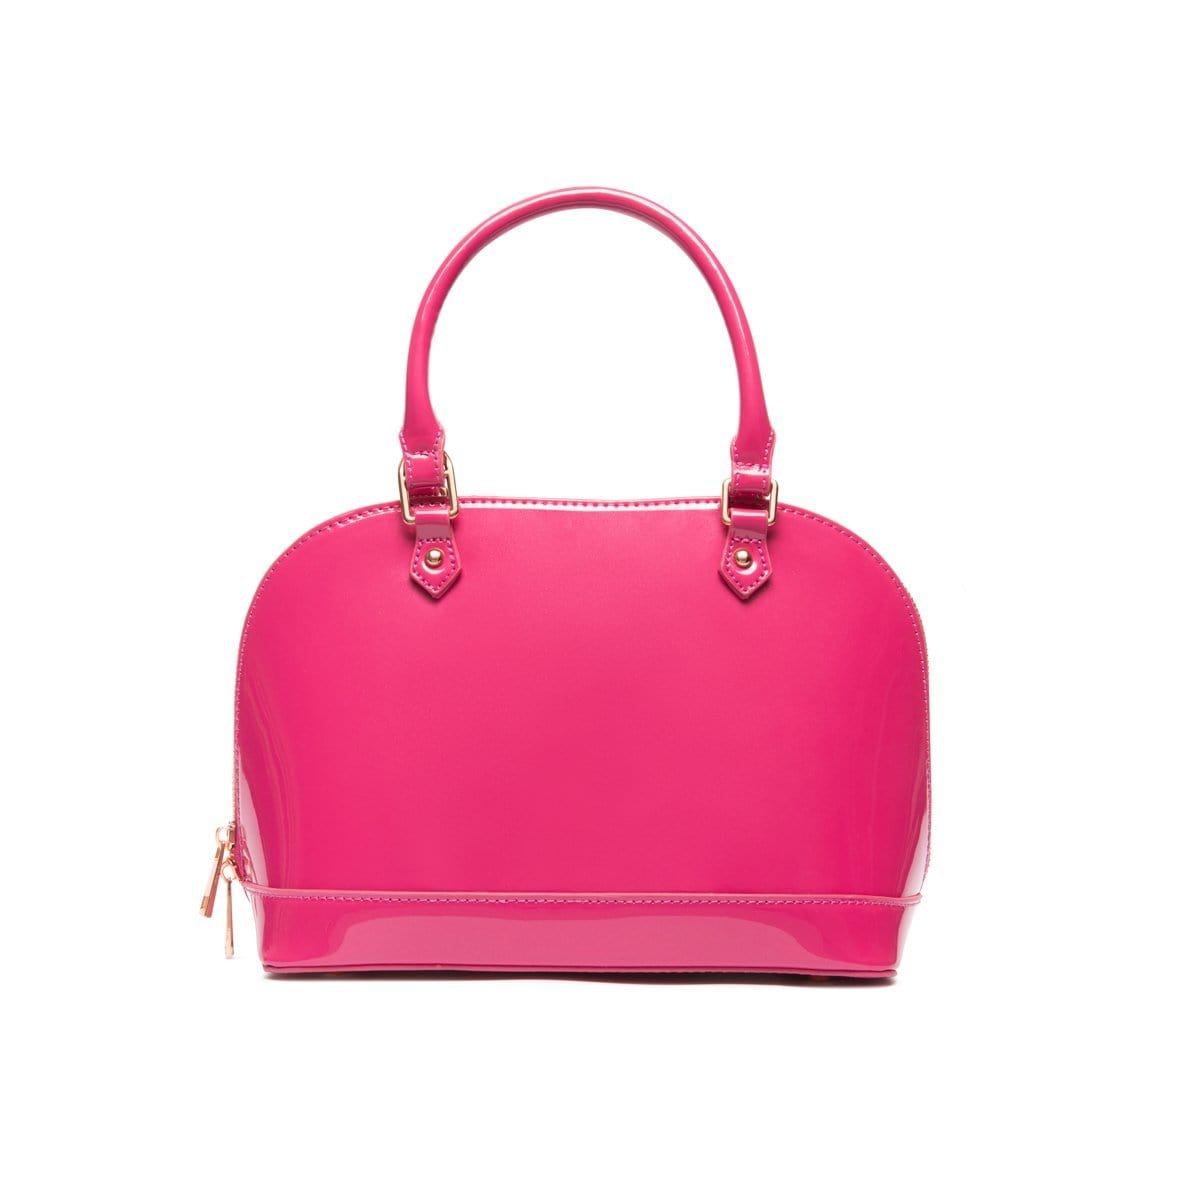 Fuchsia Alexa Handbag Rose Gold